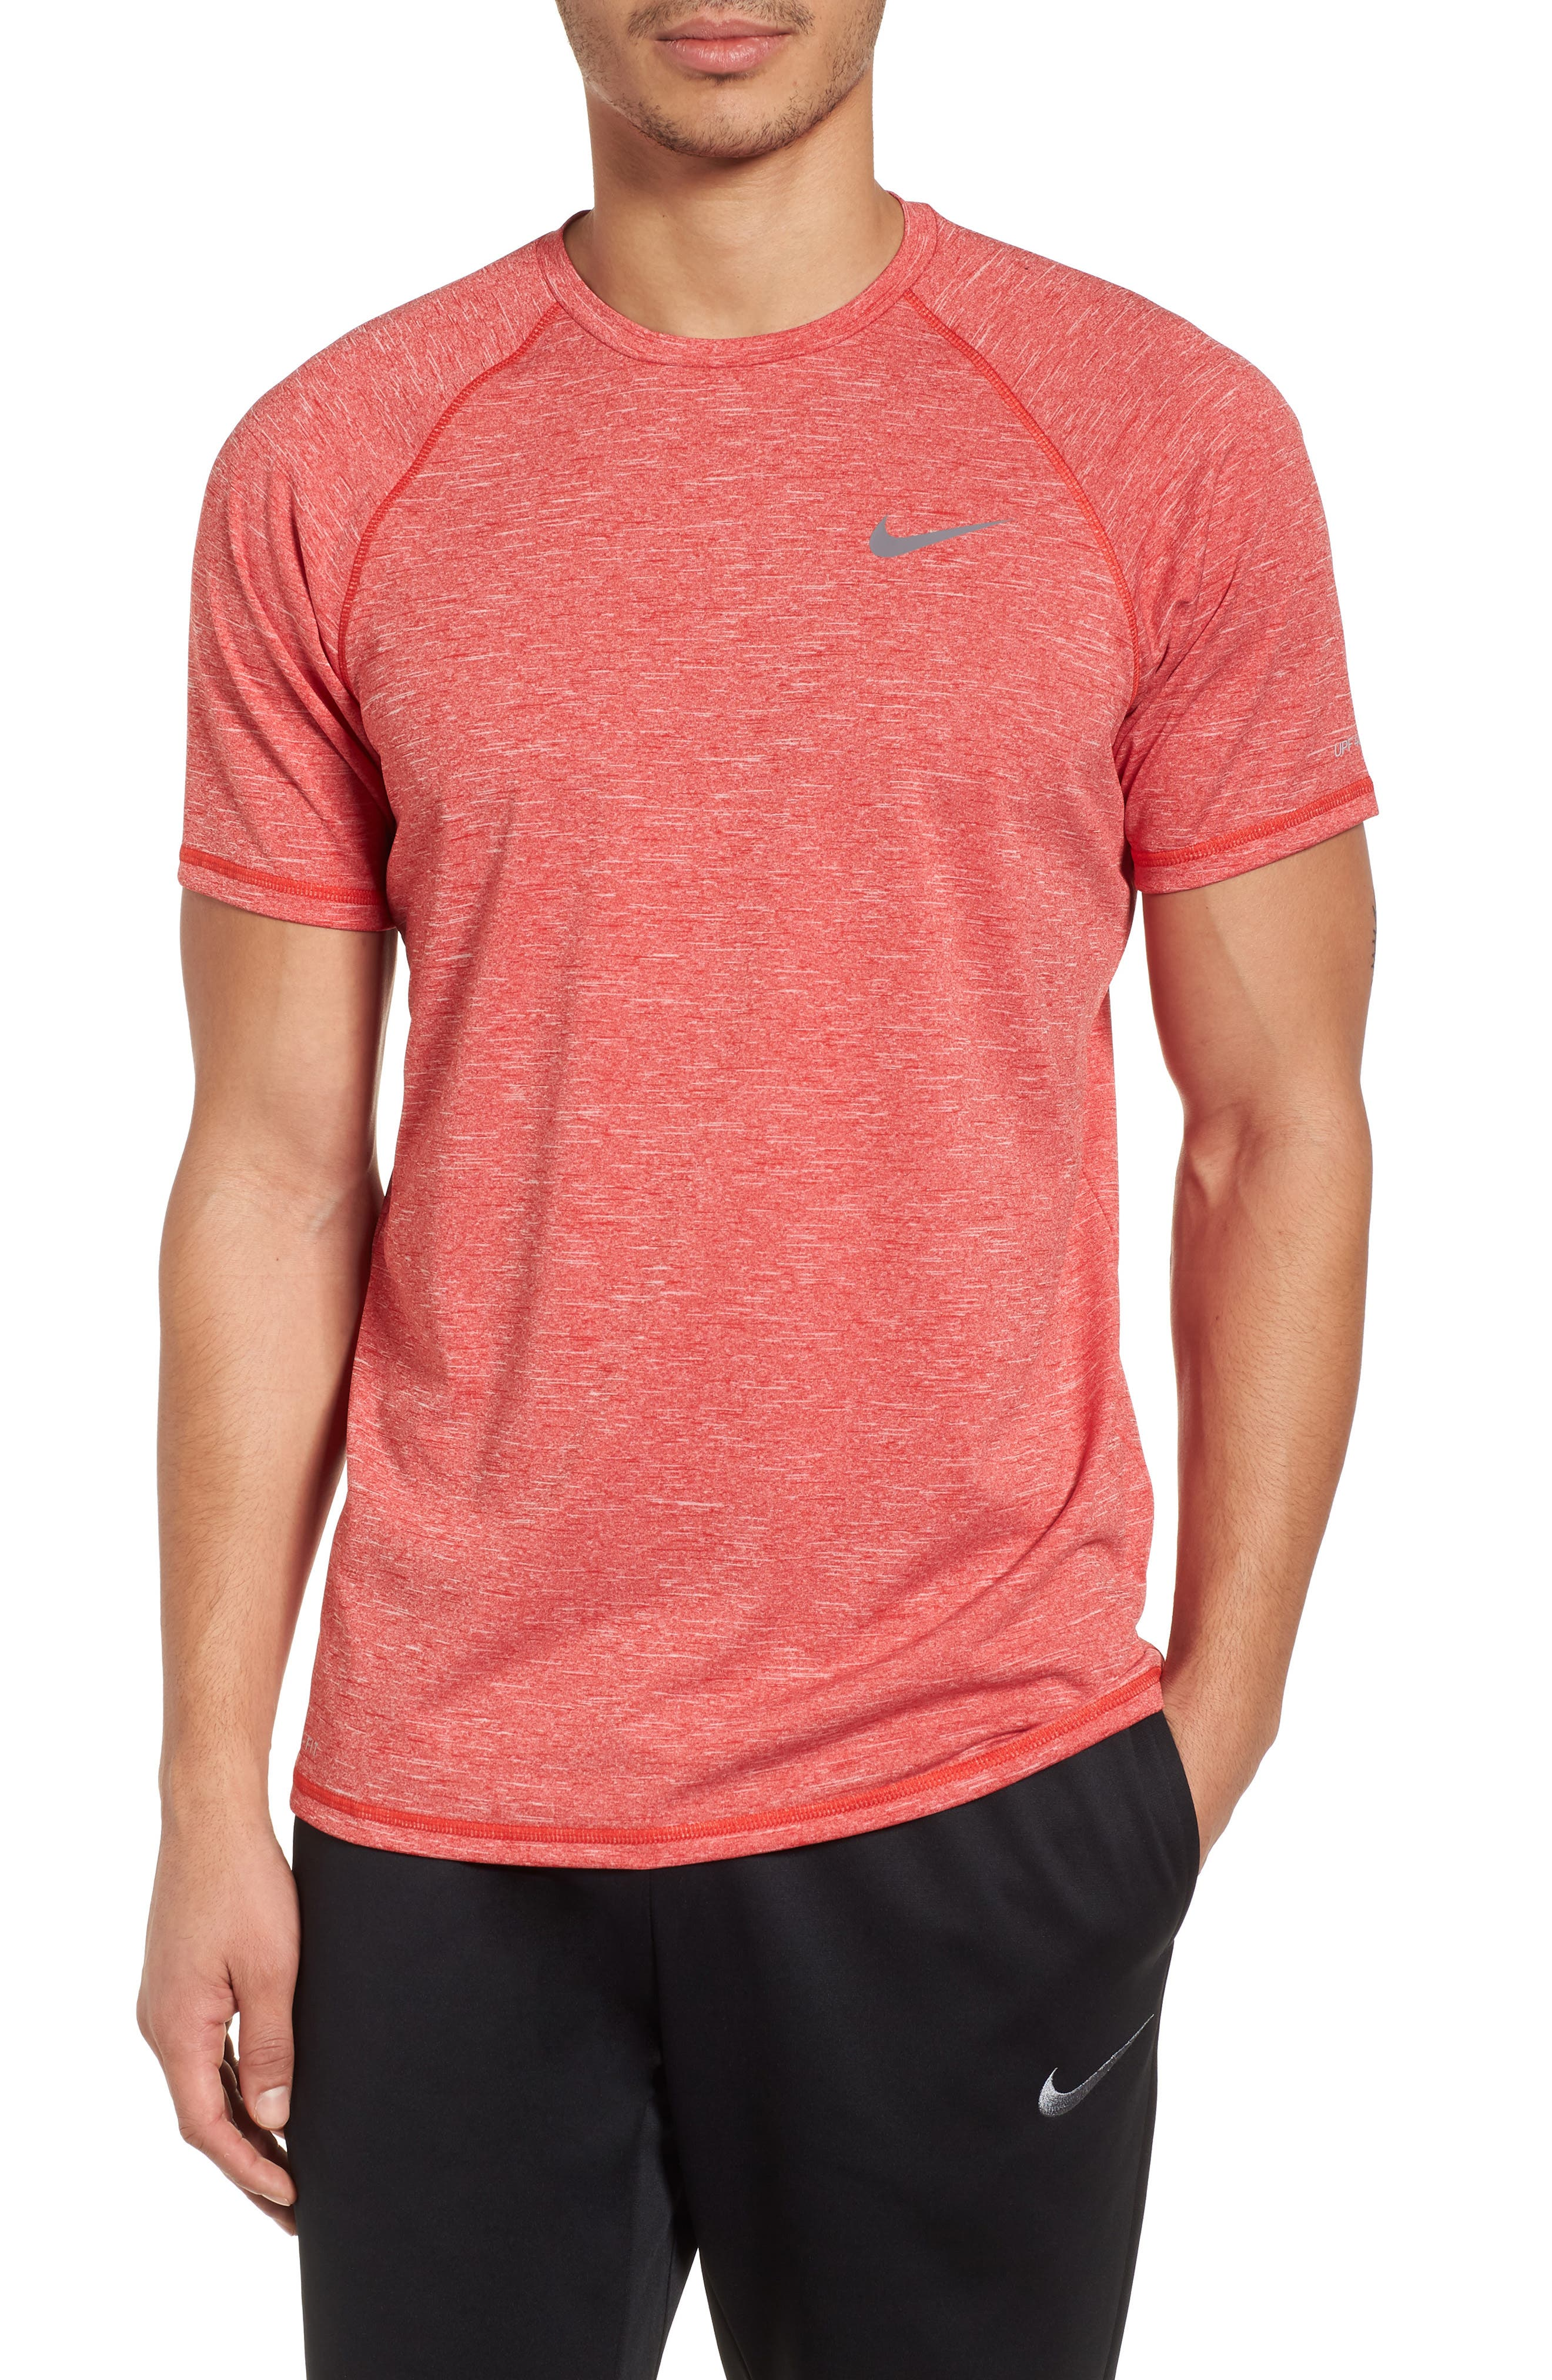 Dry Hydroguard T-Shirt,                         Main,                         color, University Red